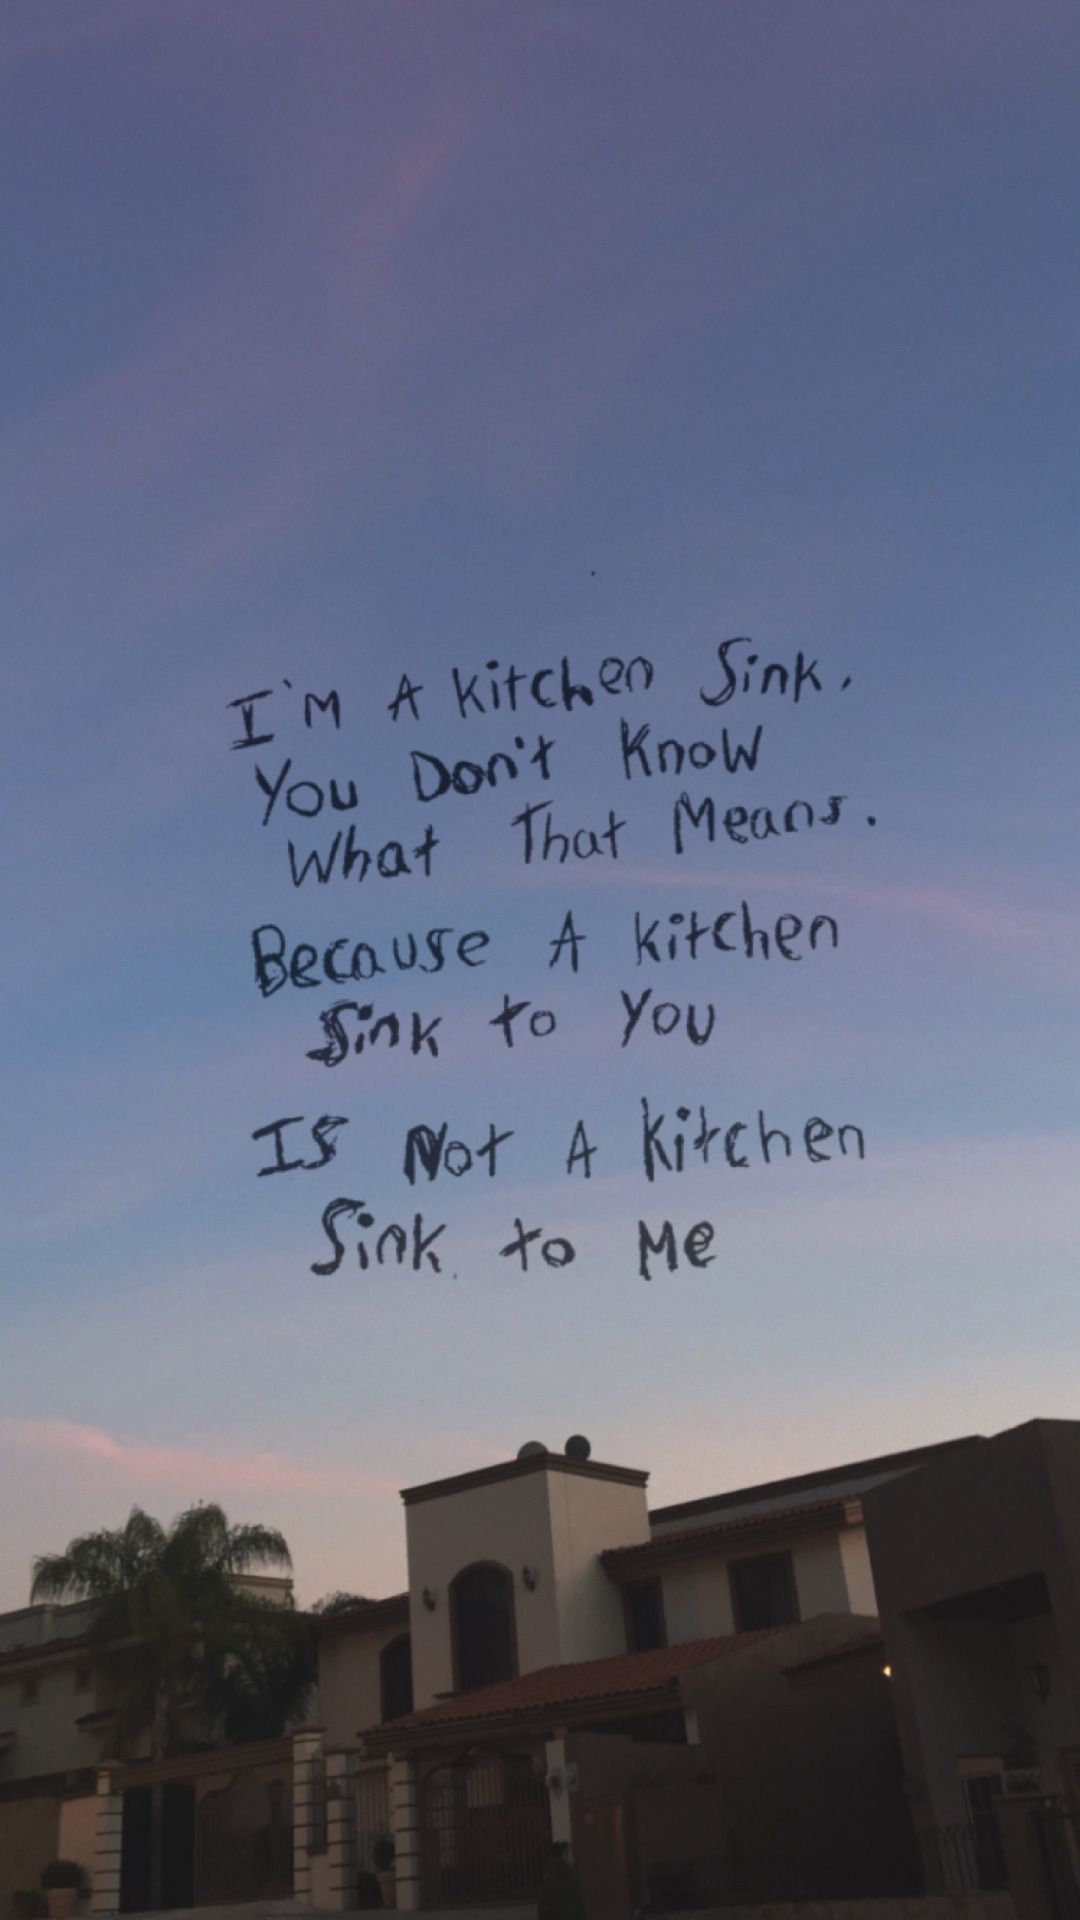 Okay friend kitchen sink twenty ne pil ts me for Kitchen sink lyrics